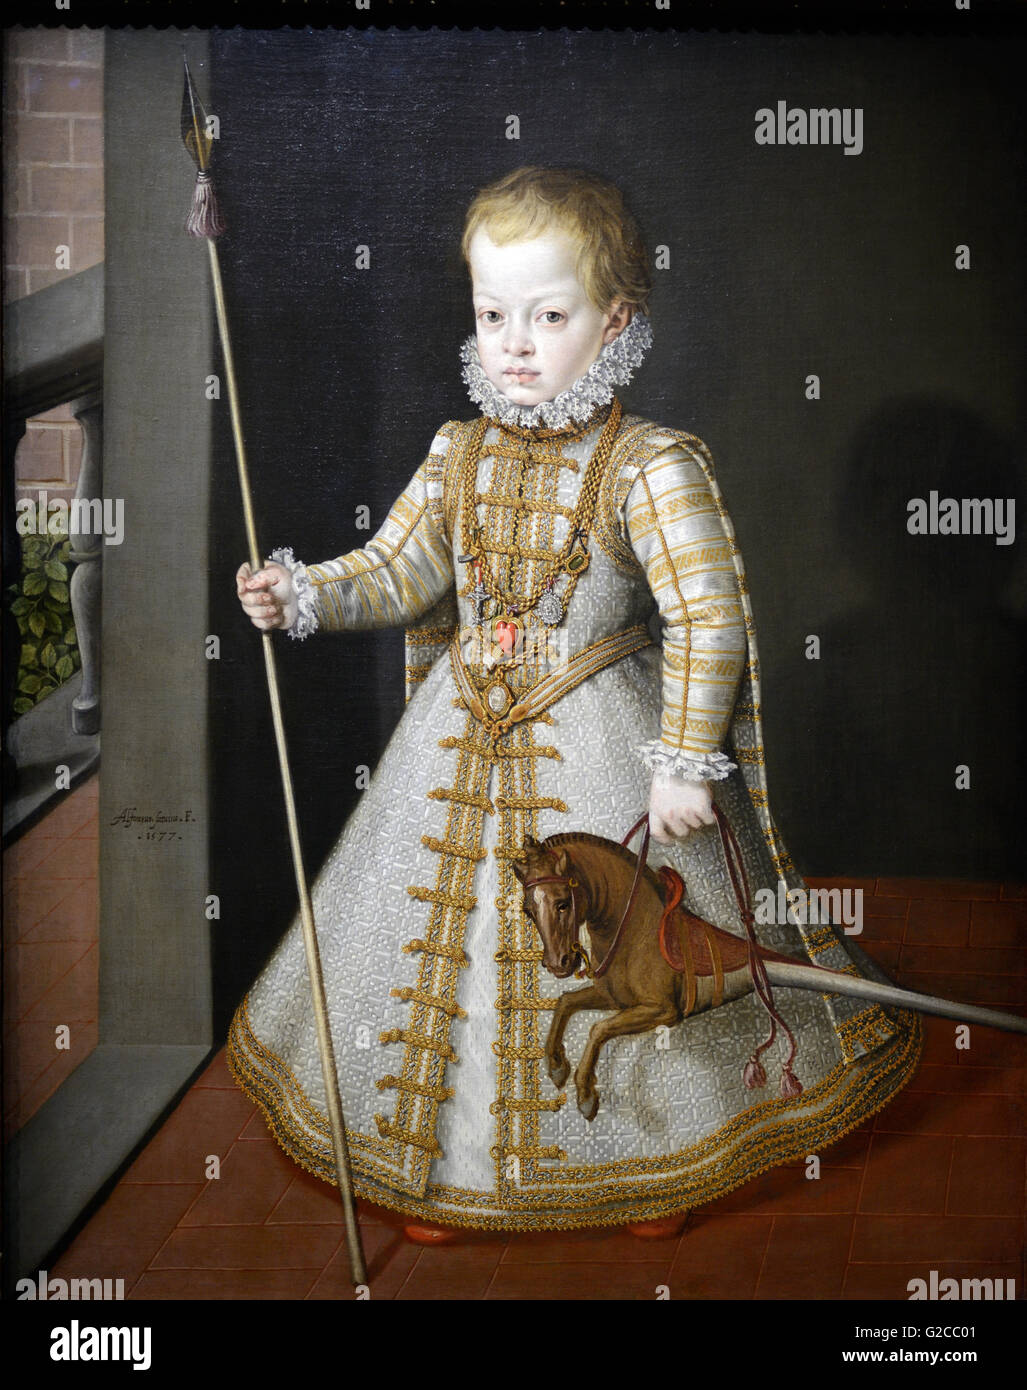 Oil Painting of Infant Diego Son of King Philip 11 of Spain (1577) by Coello. Prince in Regal Dress Holding Toy Stock Photo